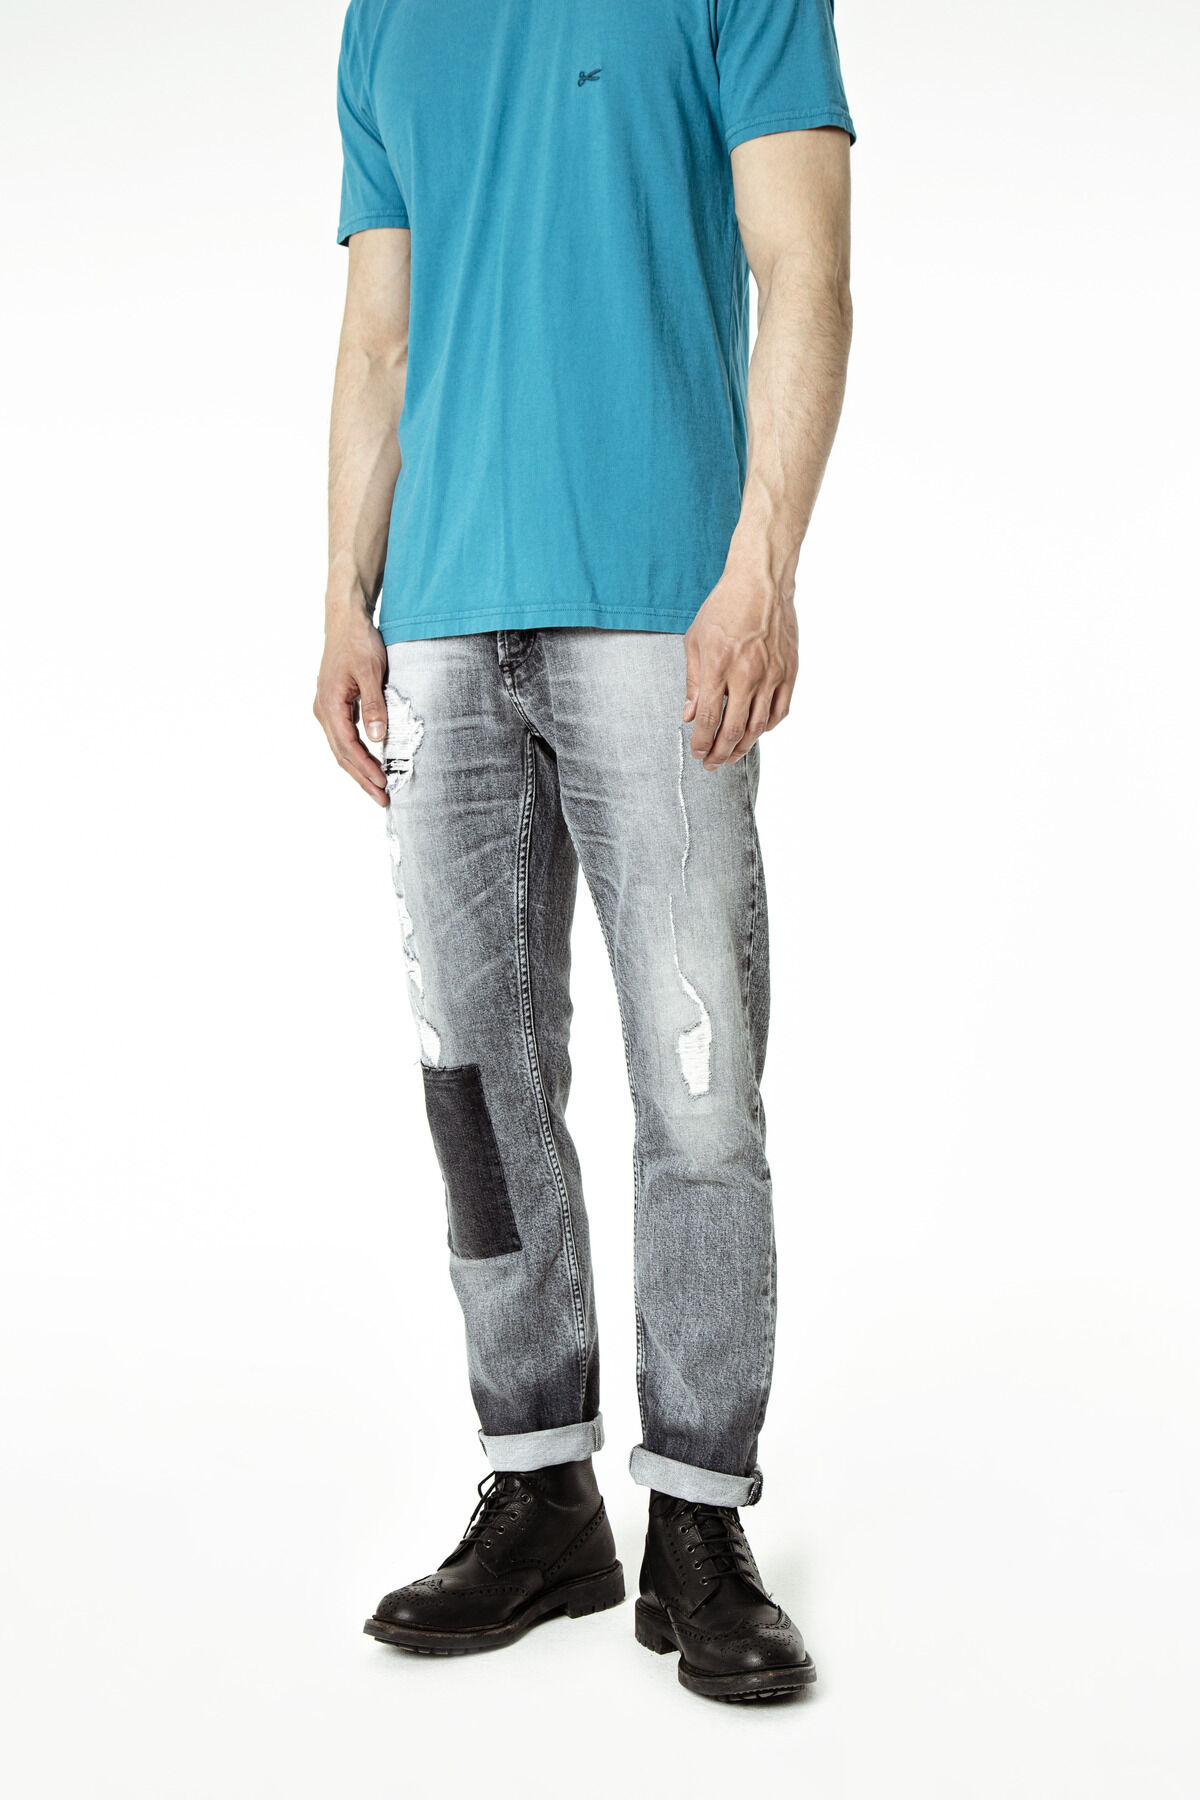 RAZOR Heavy Fade & Patchwork Denim - Slim Fit